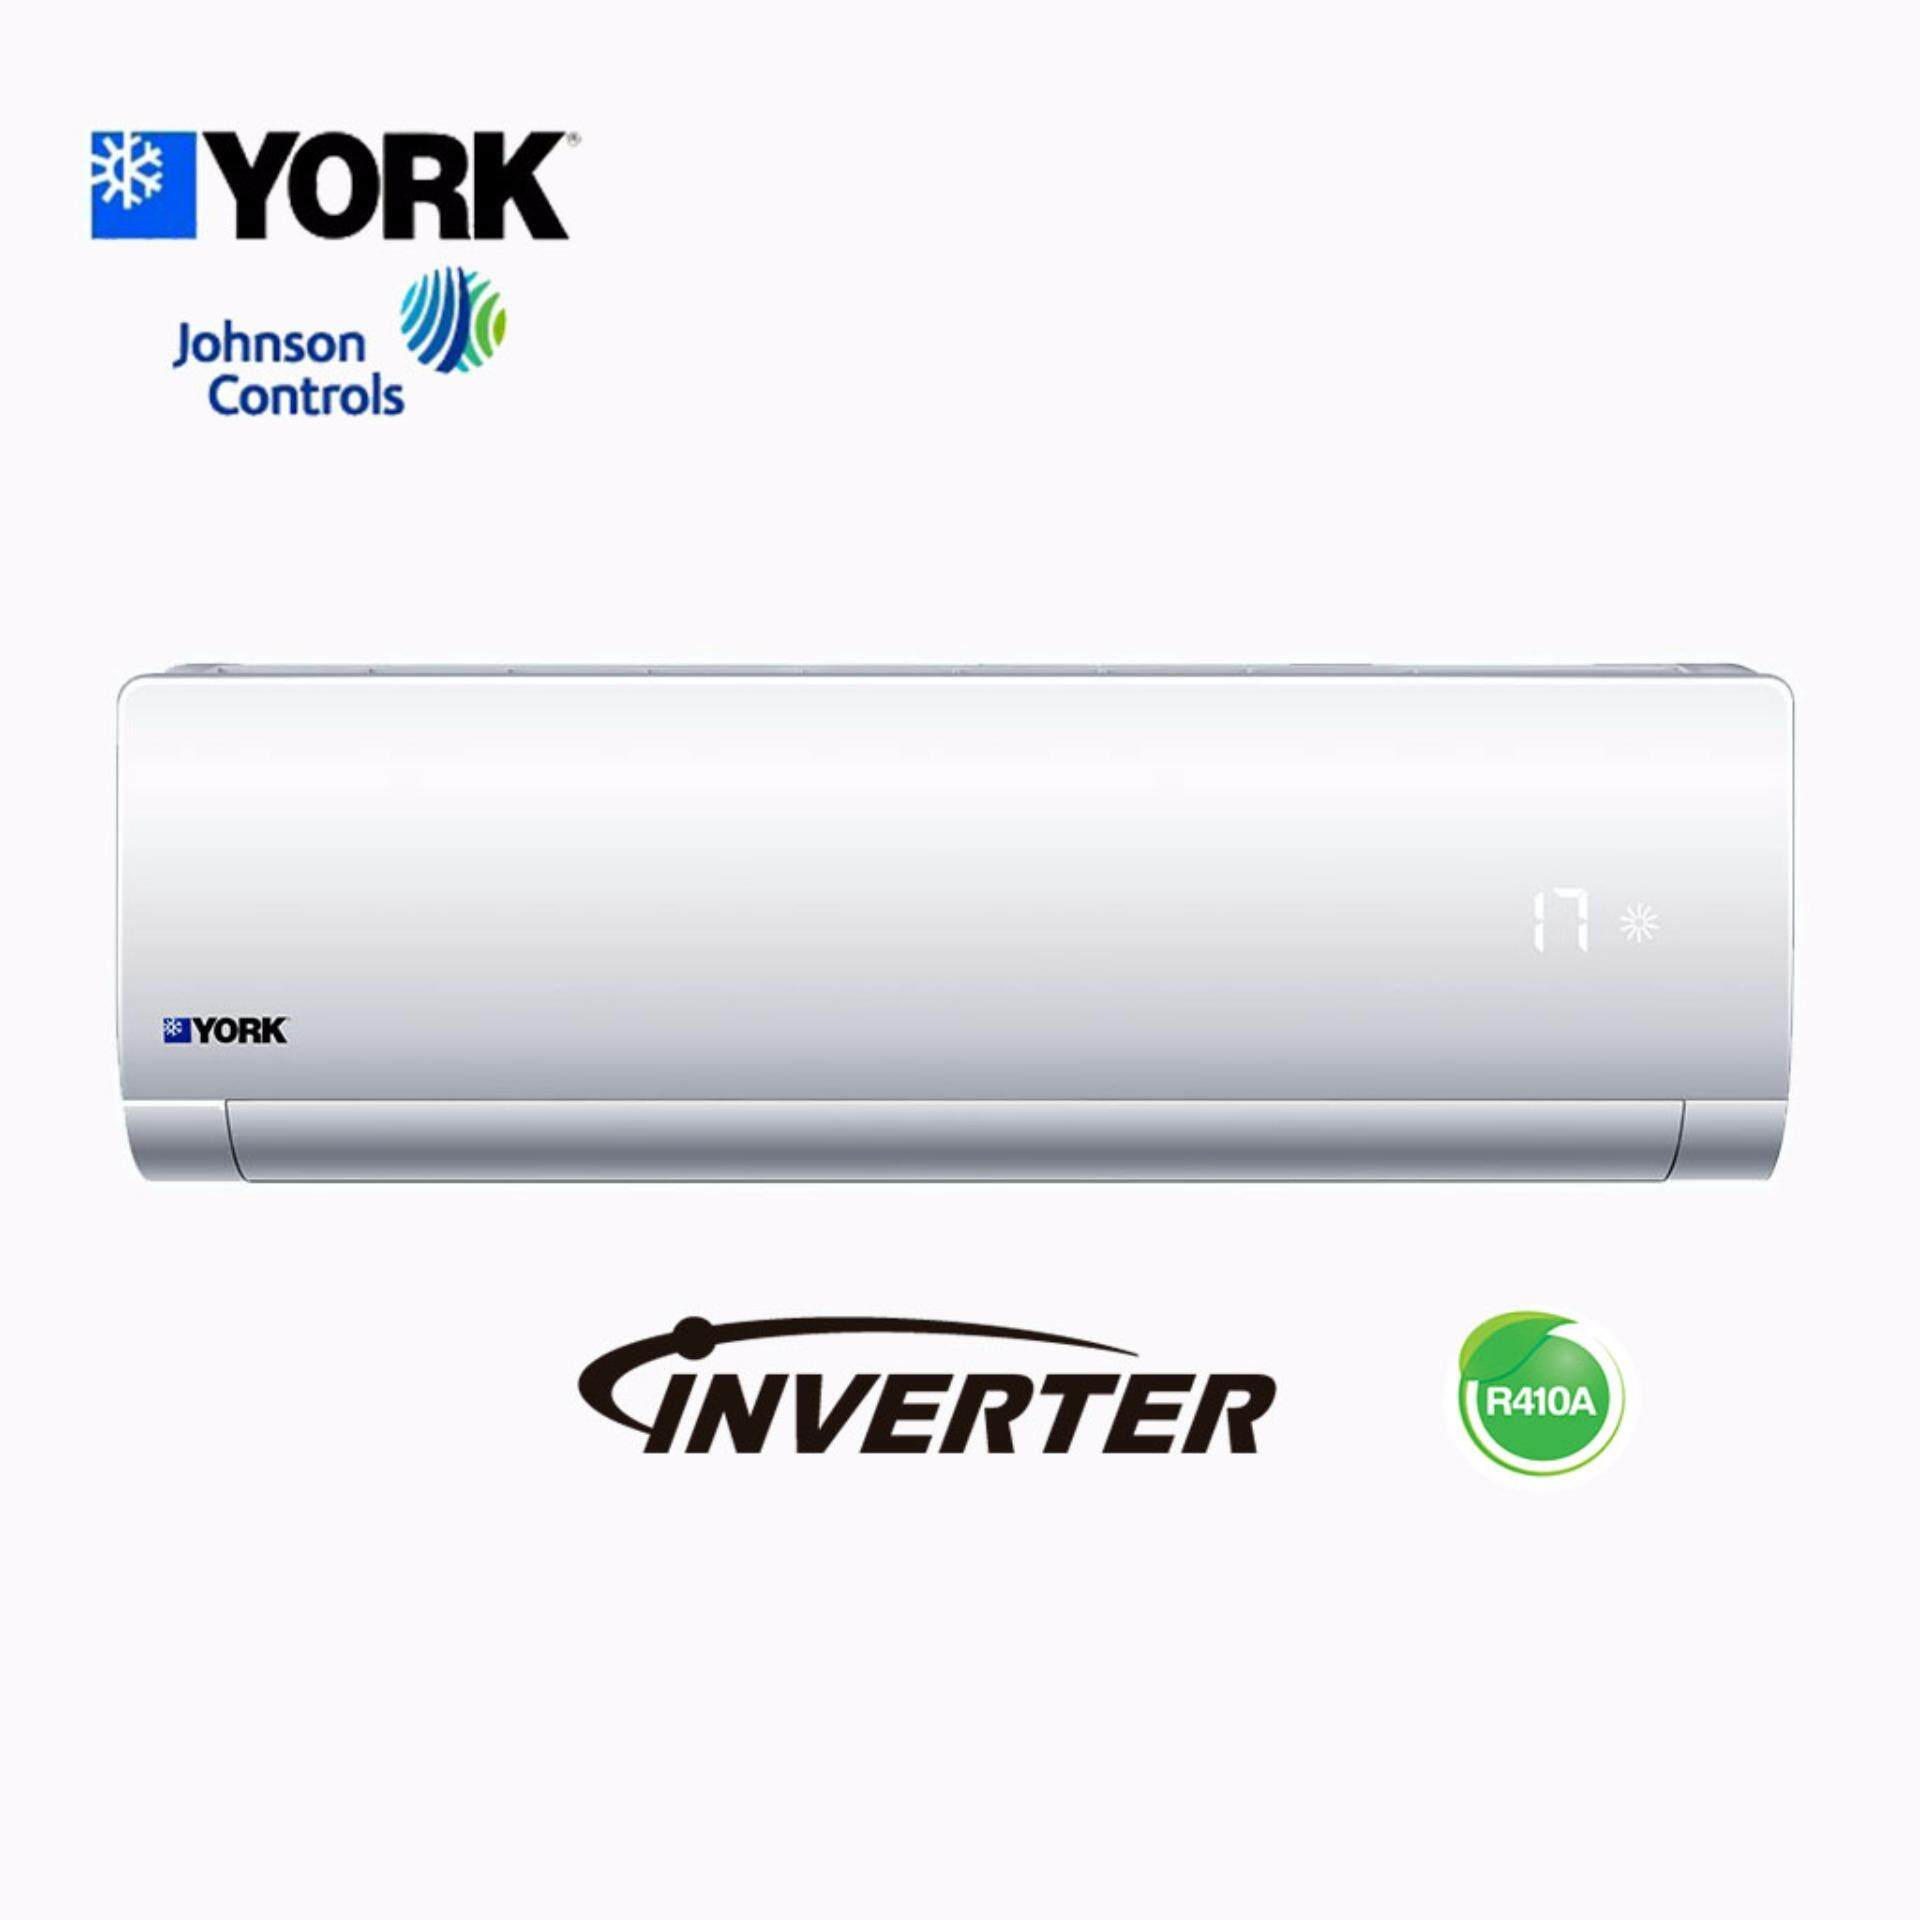 YORK INVERTER 1.0HP AIR COND AIR CONDITIONER YWM5J10AAS-W/YSL5J10AAS (R410A) image on snachetto.com